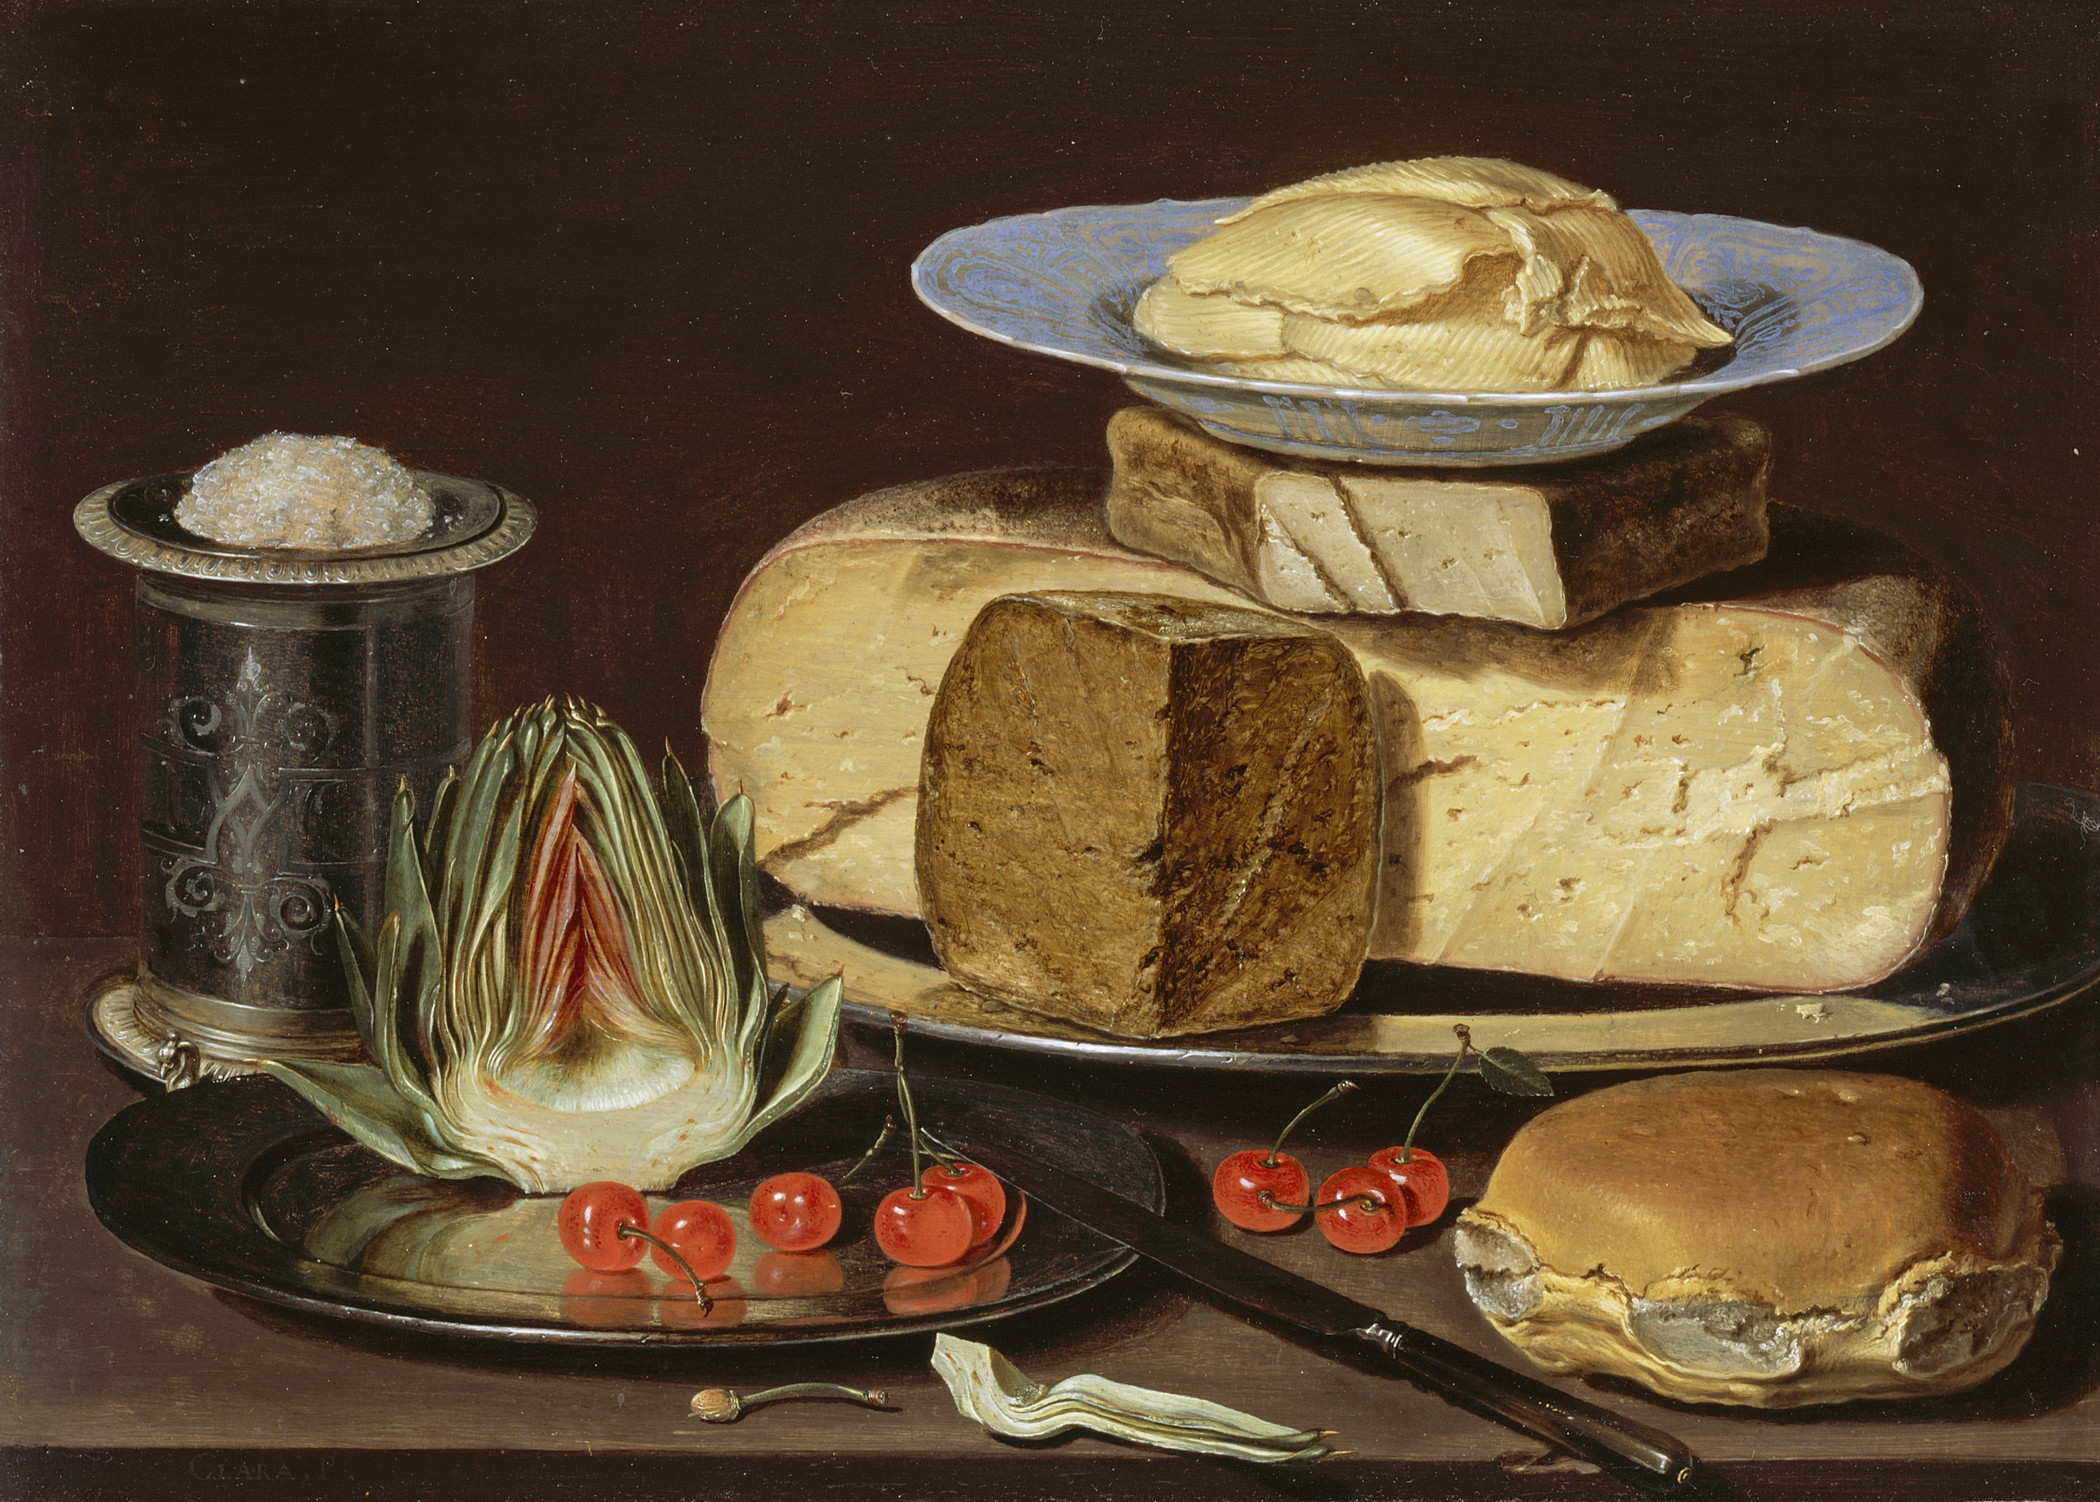 Clara Peeters, Still Life with Cheeses, Artichoke, and Cherries, c. 1625, Los Angeles County Museum of Art, gift of Mr. and Mrs. Edward W. Carter, photo © Museum Associates/LACMA